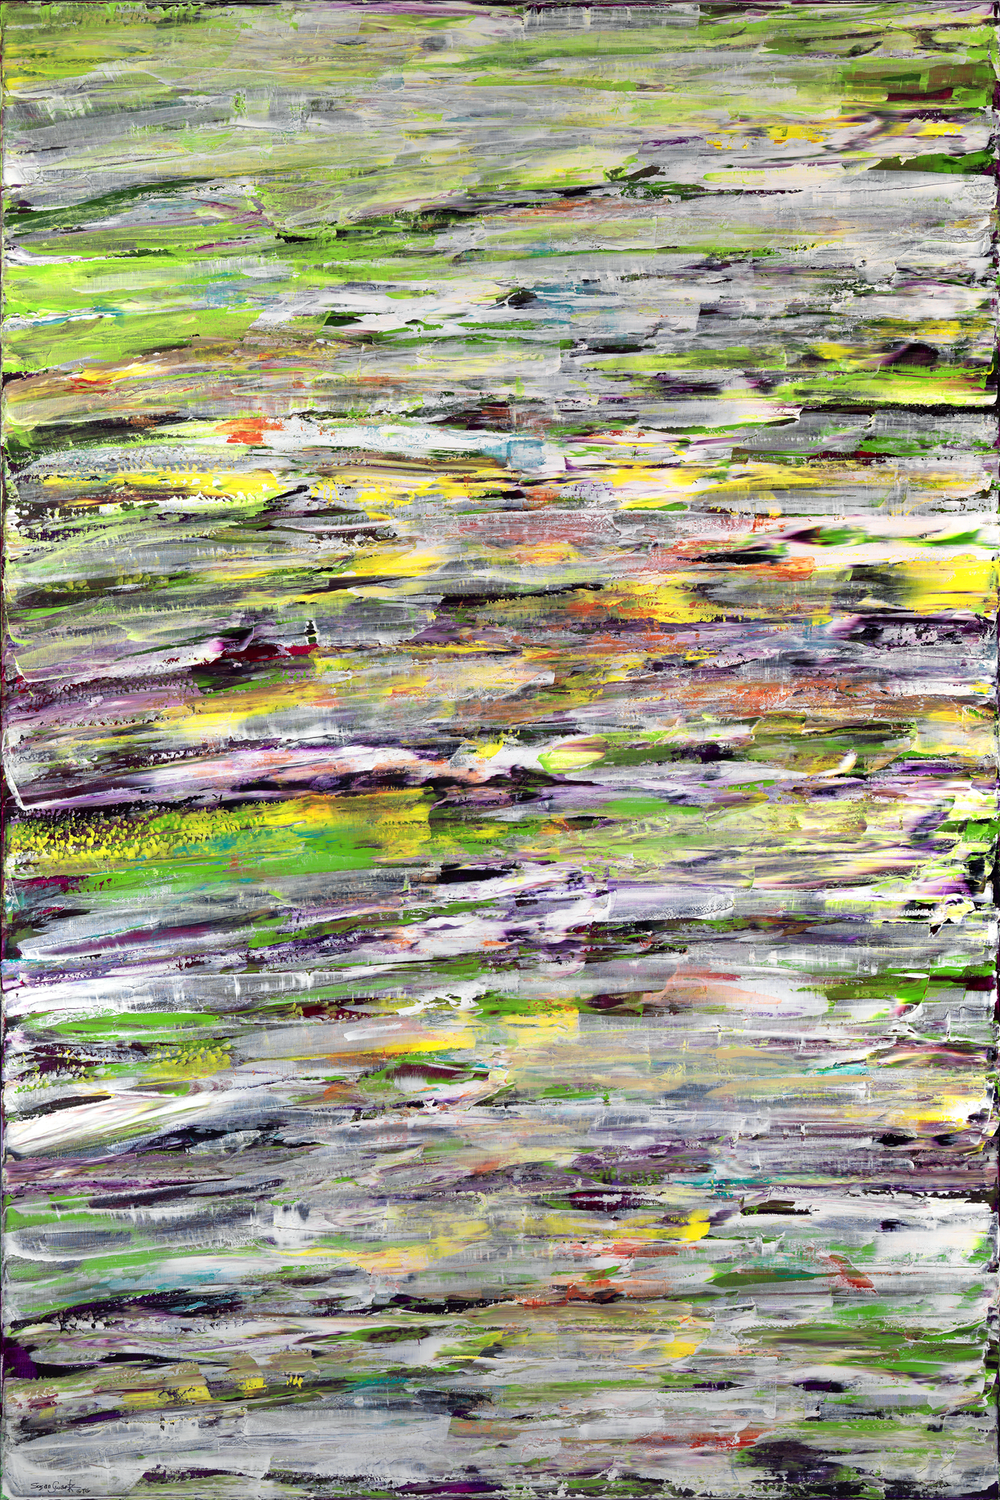 Serenade of Lilies 3  48 x 72 in, 122 x 183 cm